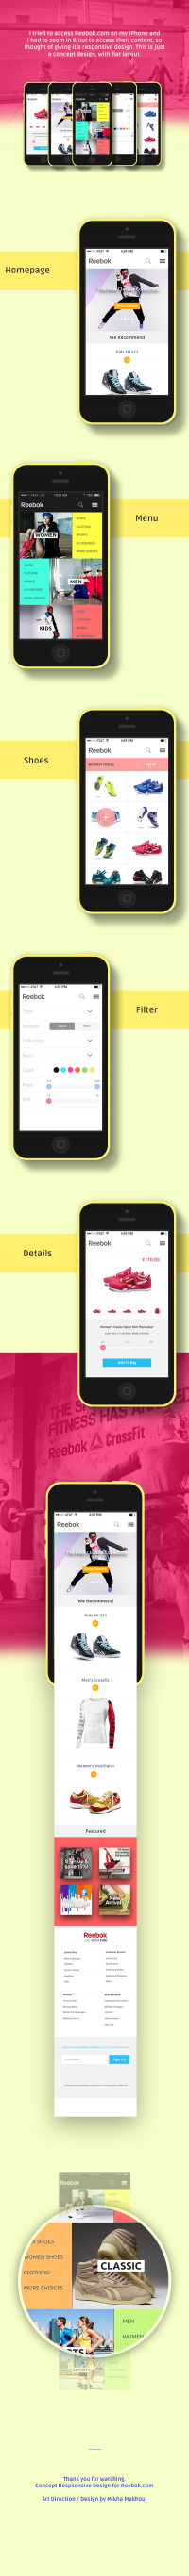 Reebok Mobile Site on